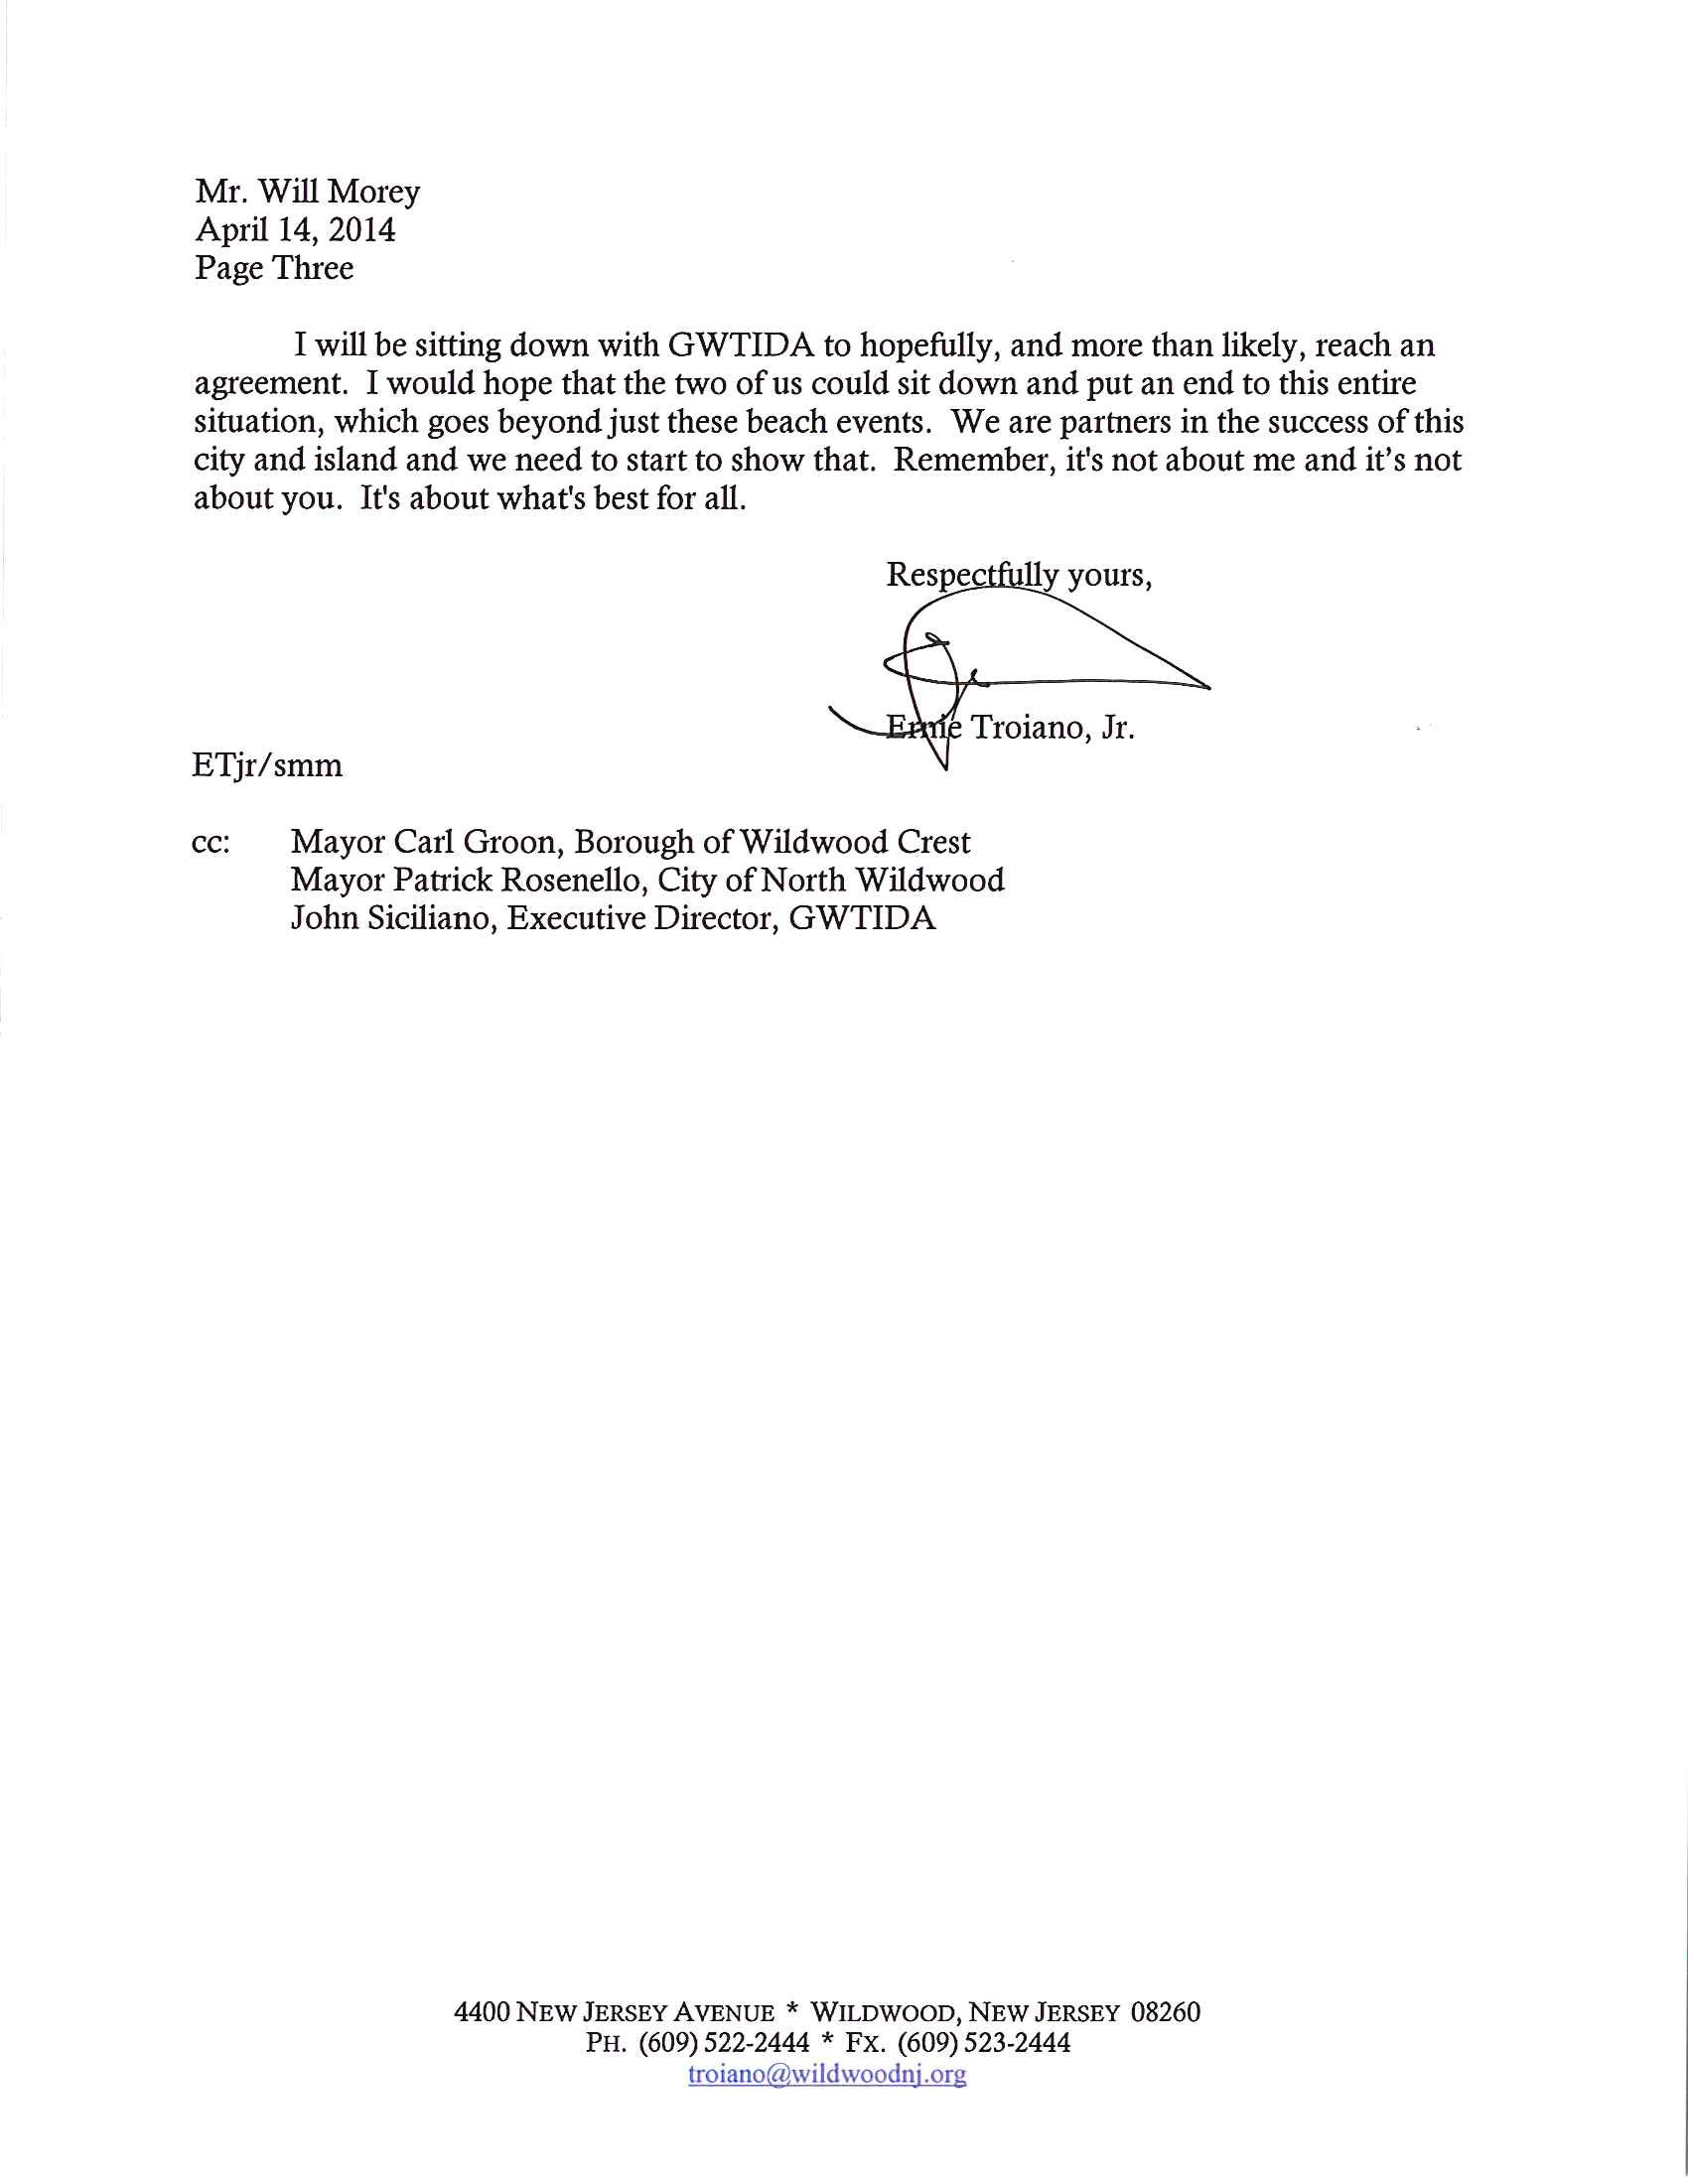 Letter to Will Morey re Beach Event Fees_Page_3